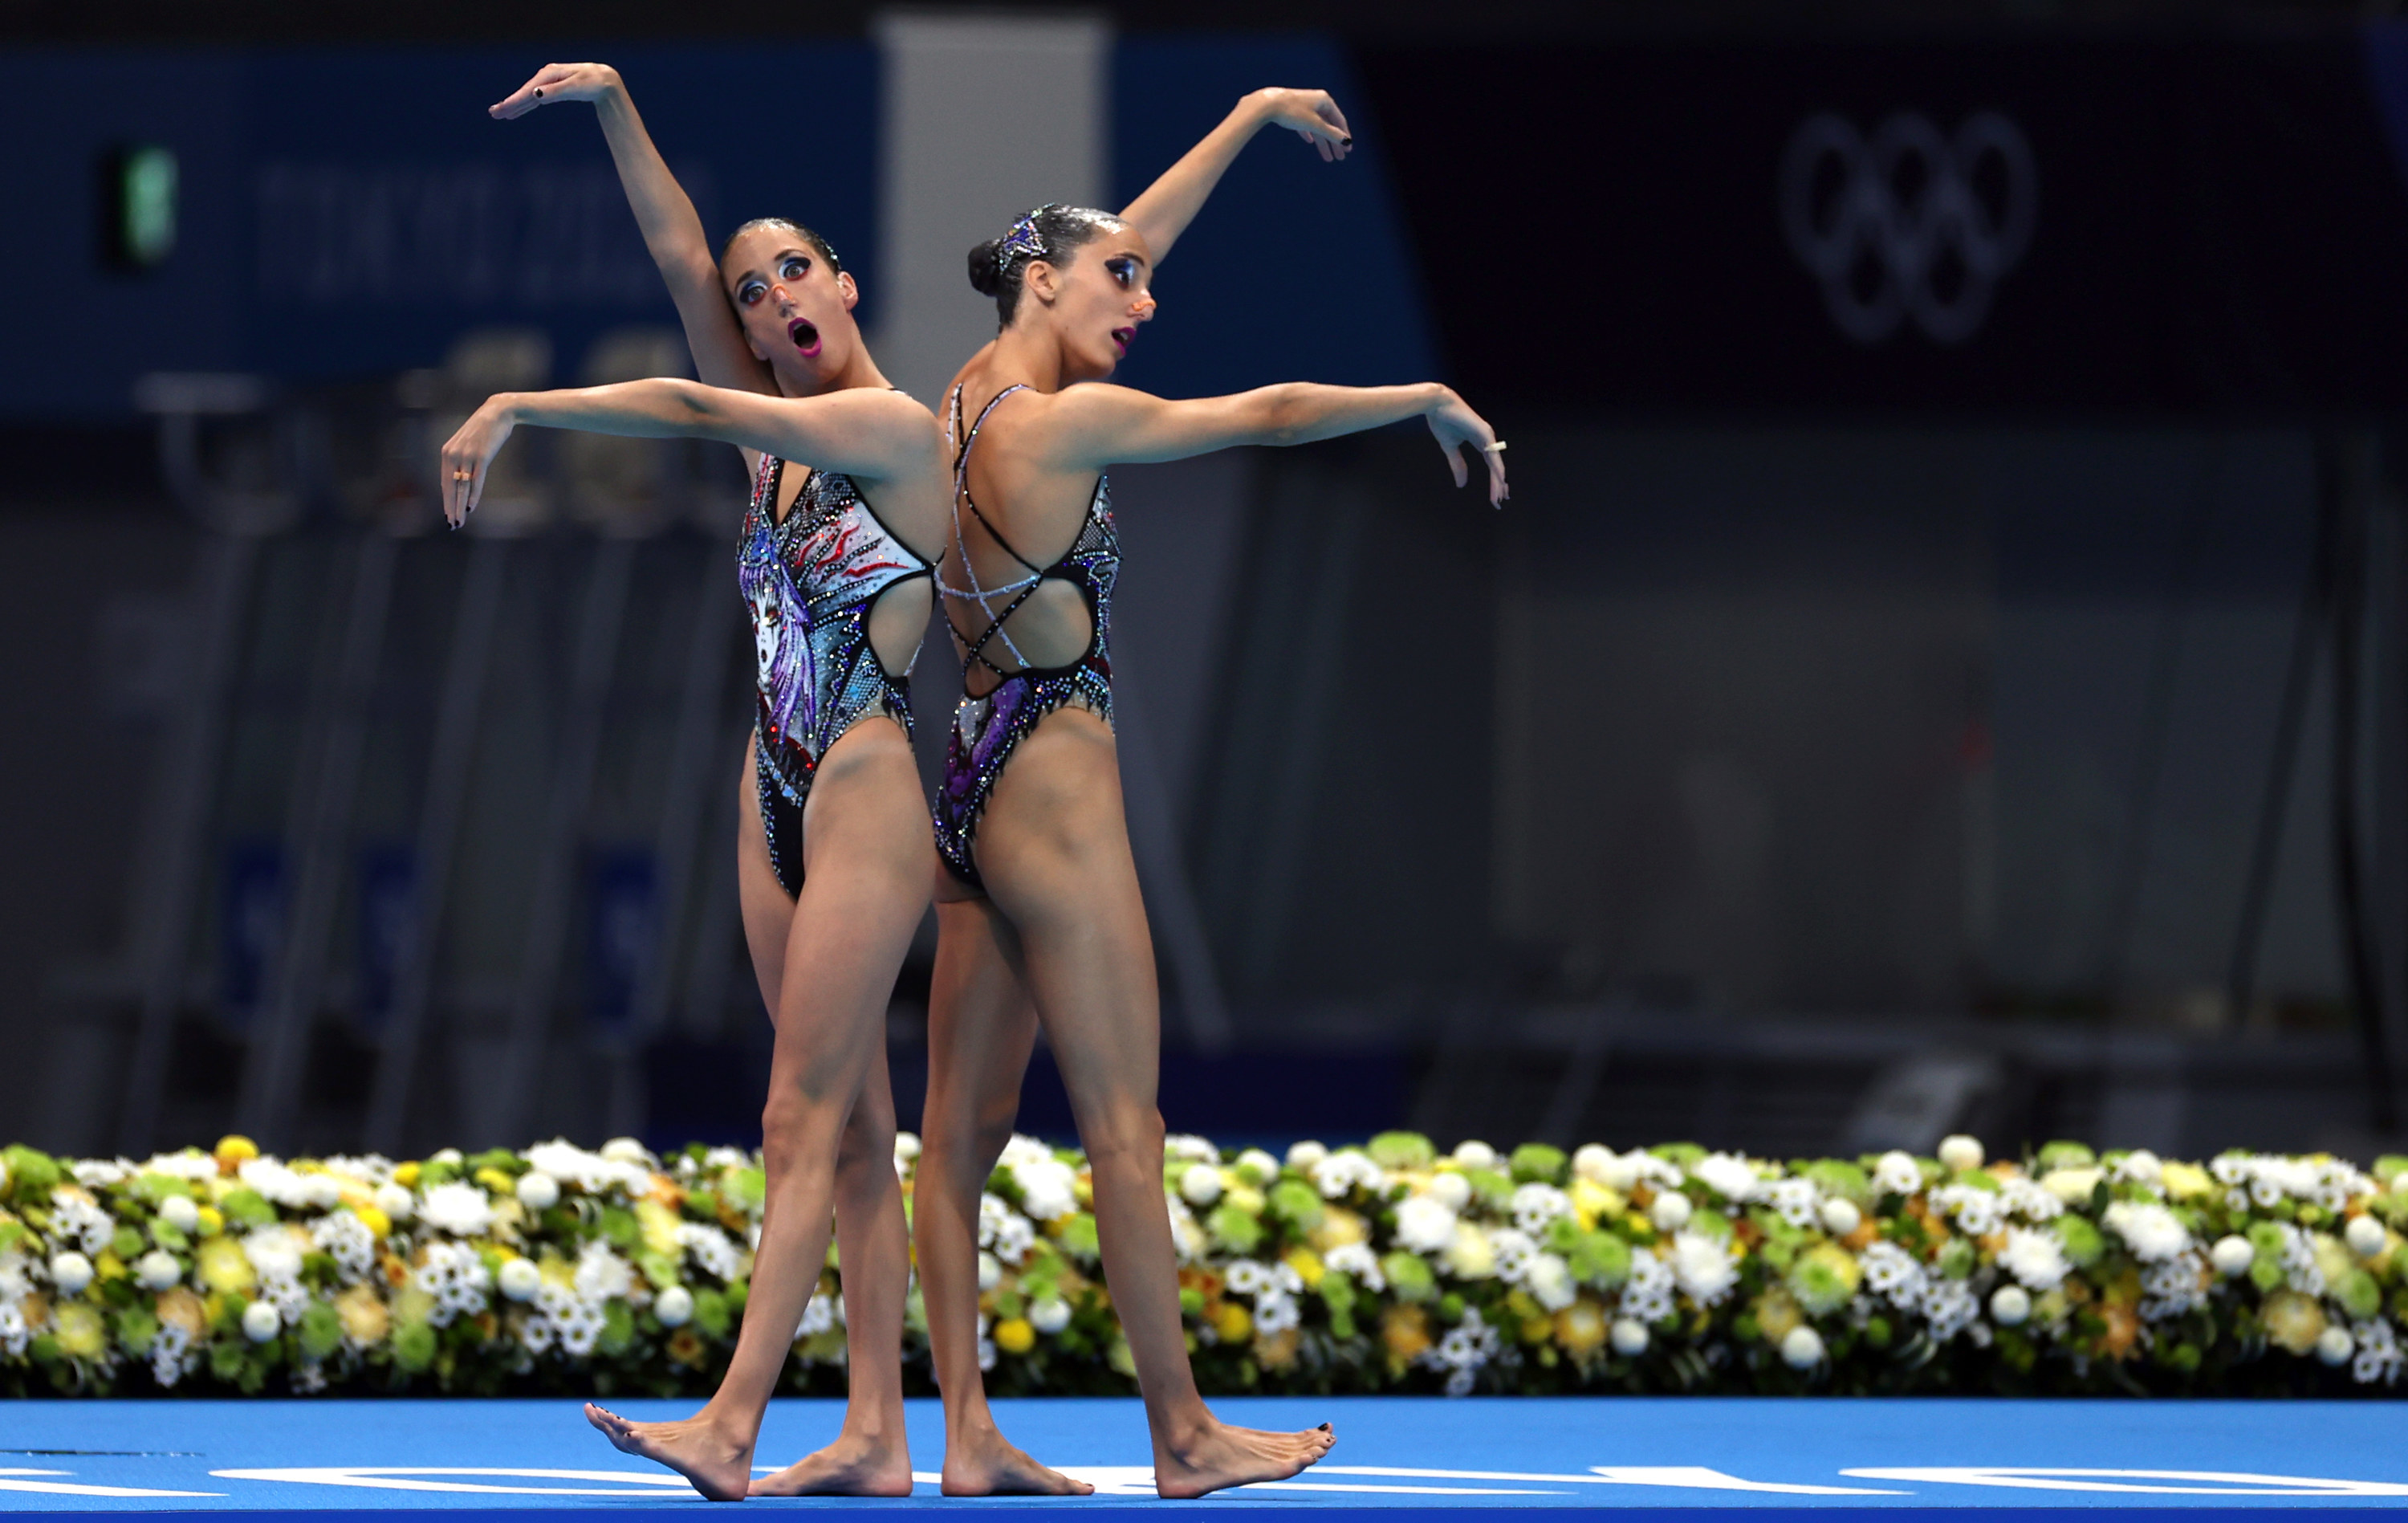 Two women swimmers stand back to back on a mat with their arms stretched before them in a performance